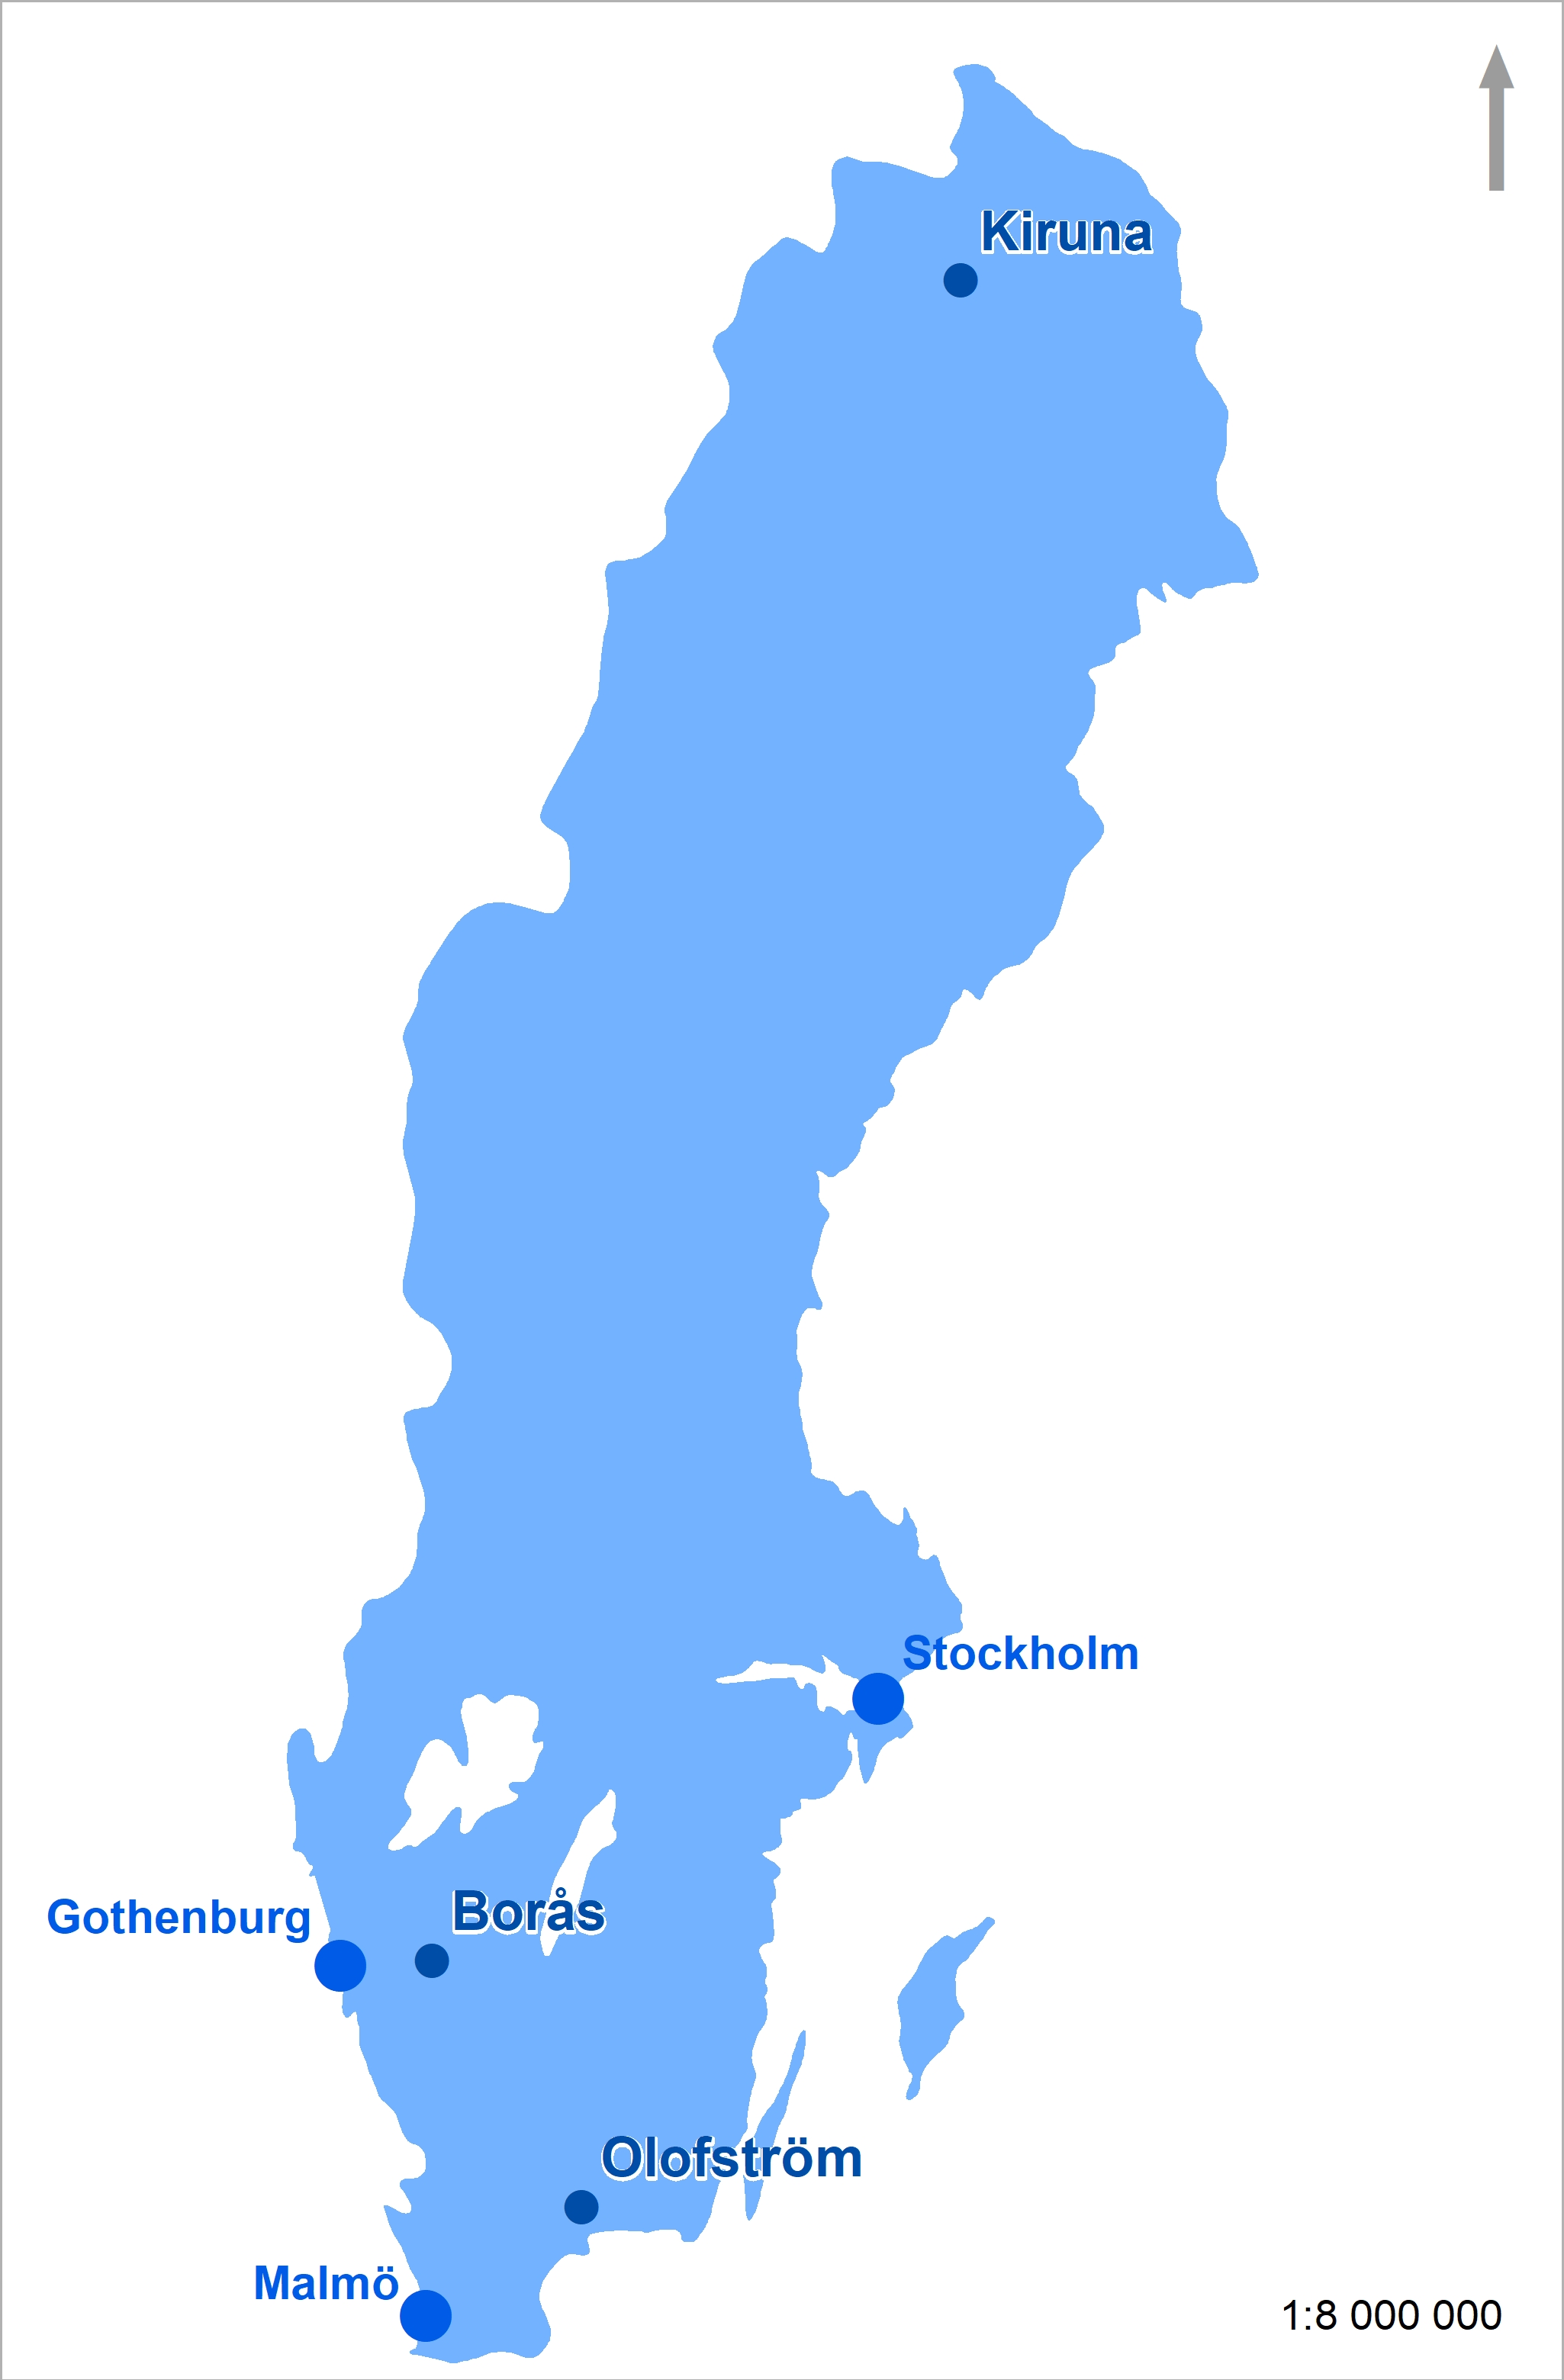 Figure 1: Major cities and location of case studies in Sweden (Source: Linda Stihl)